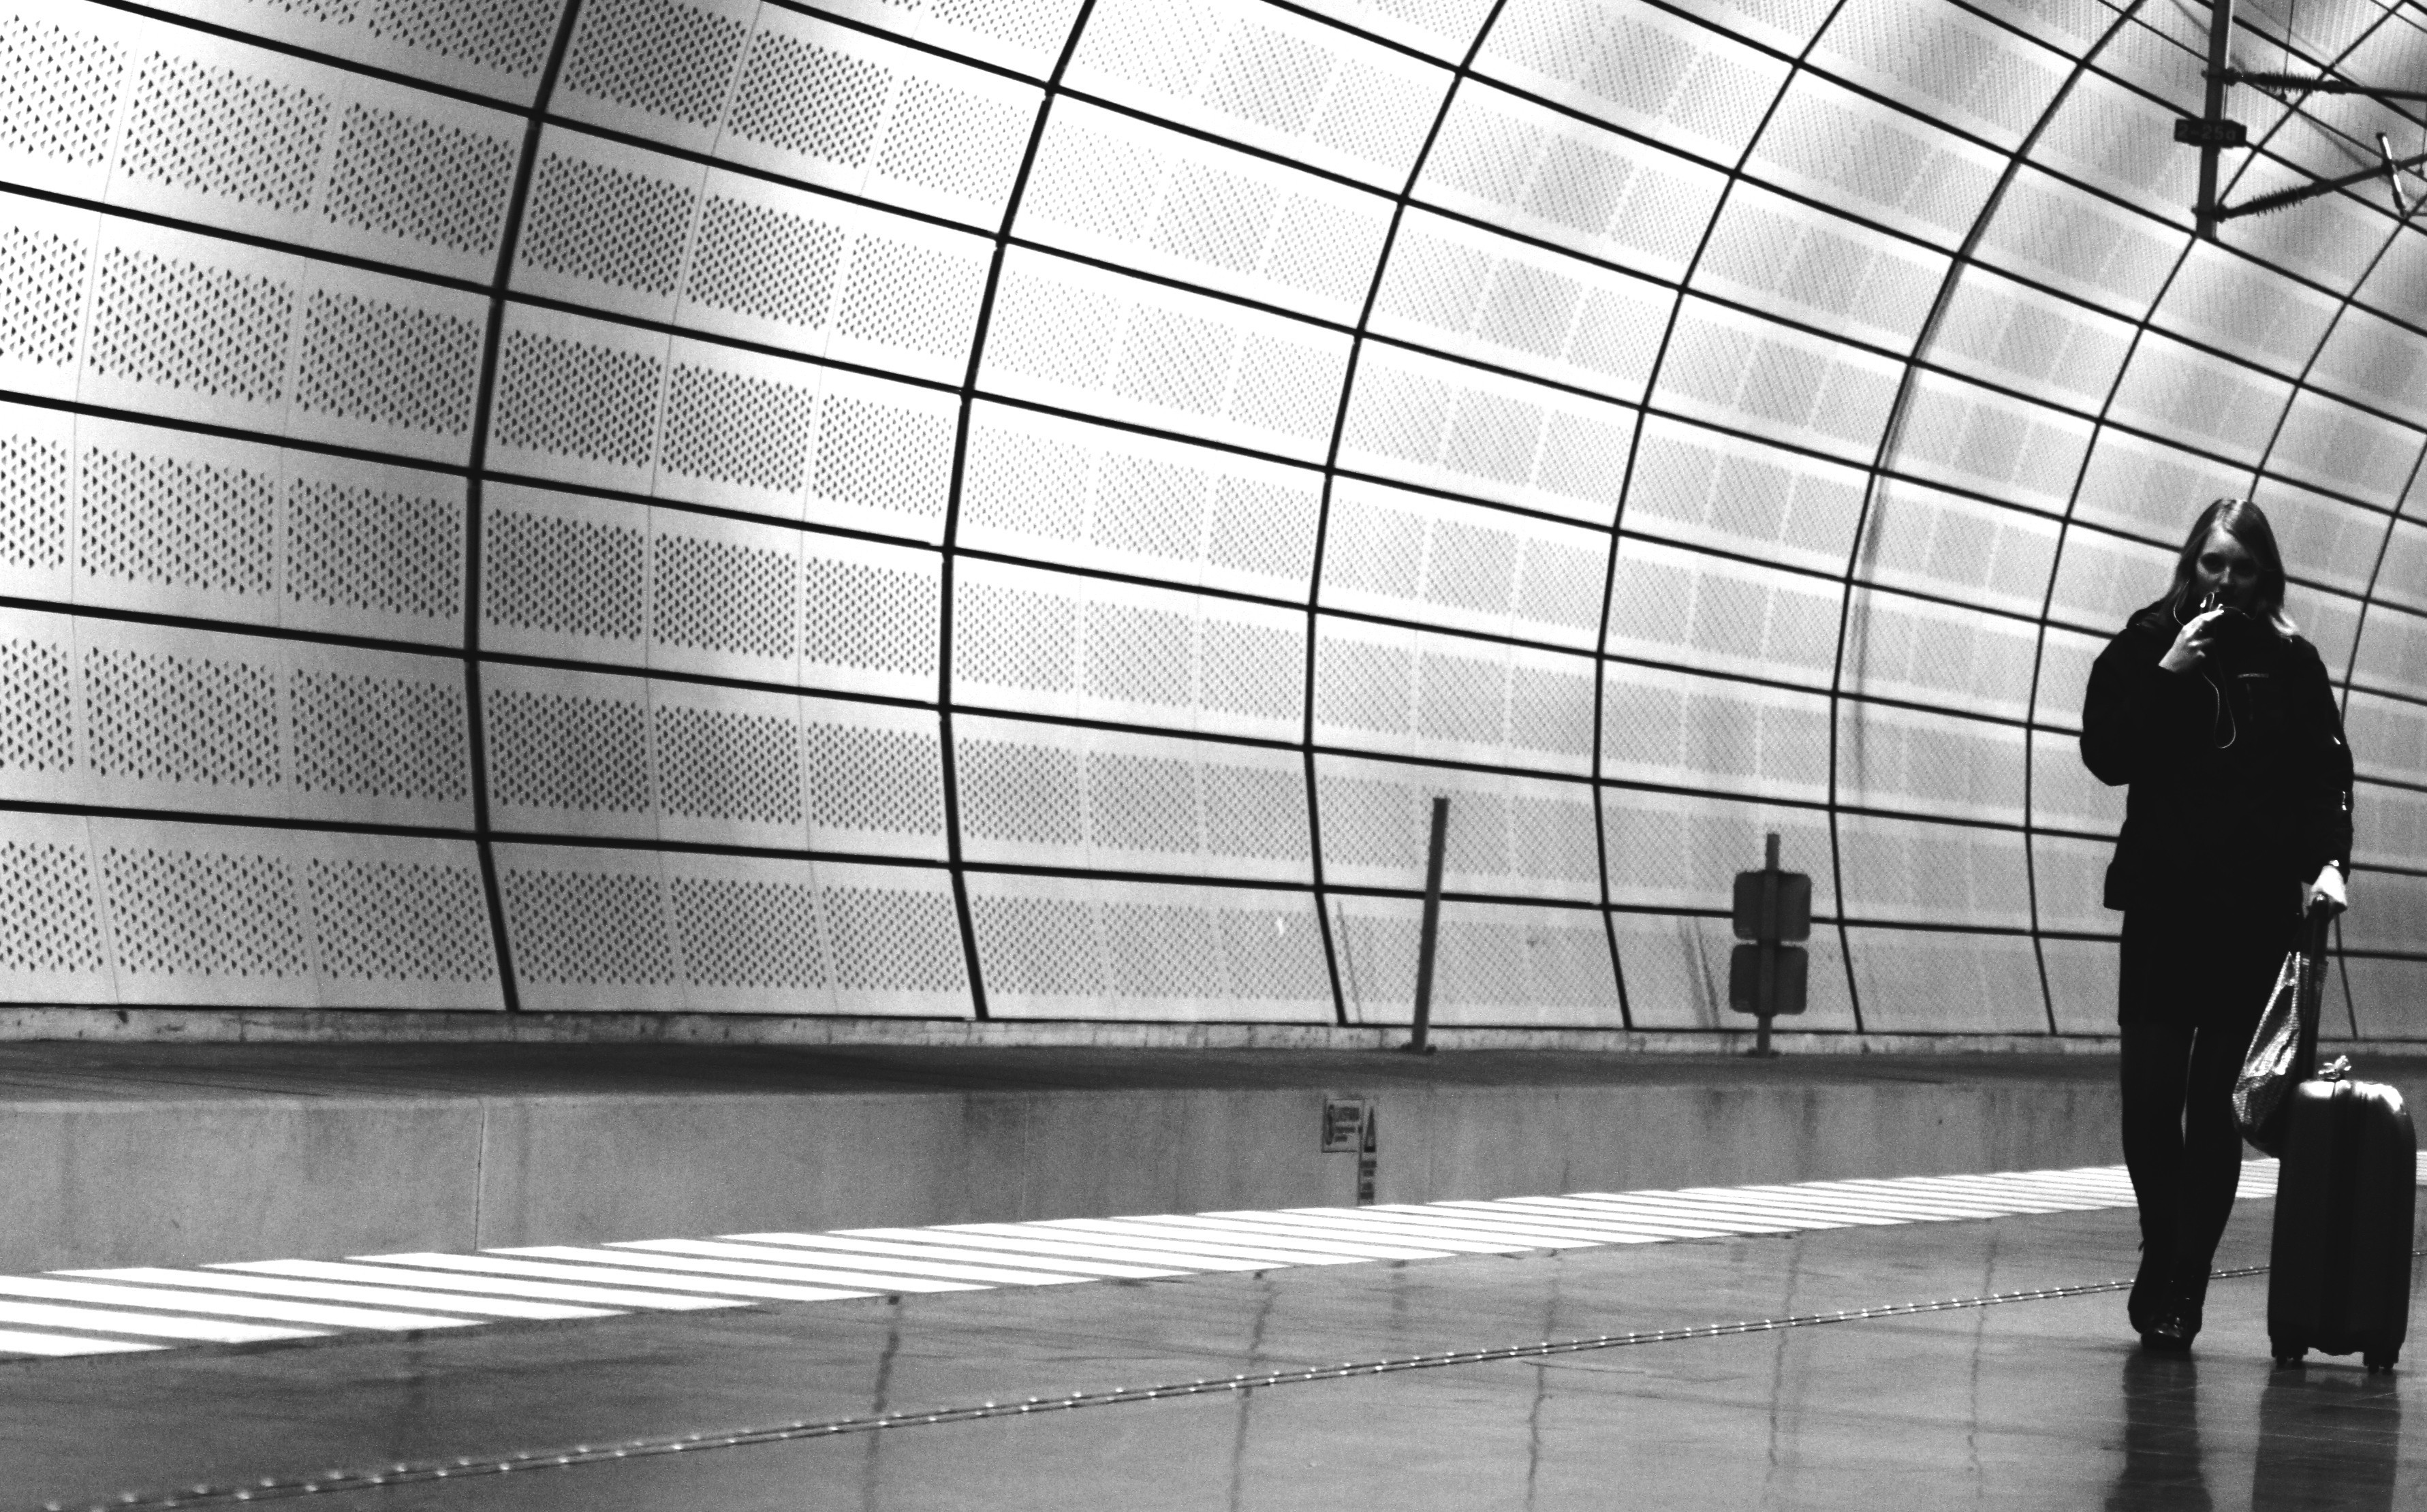 airports monochrome travel HD Wallpaper